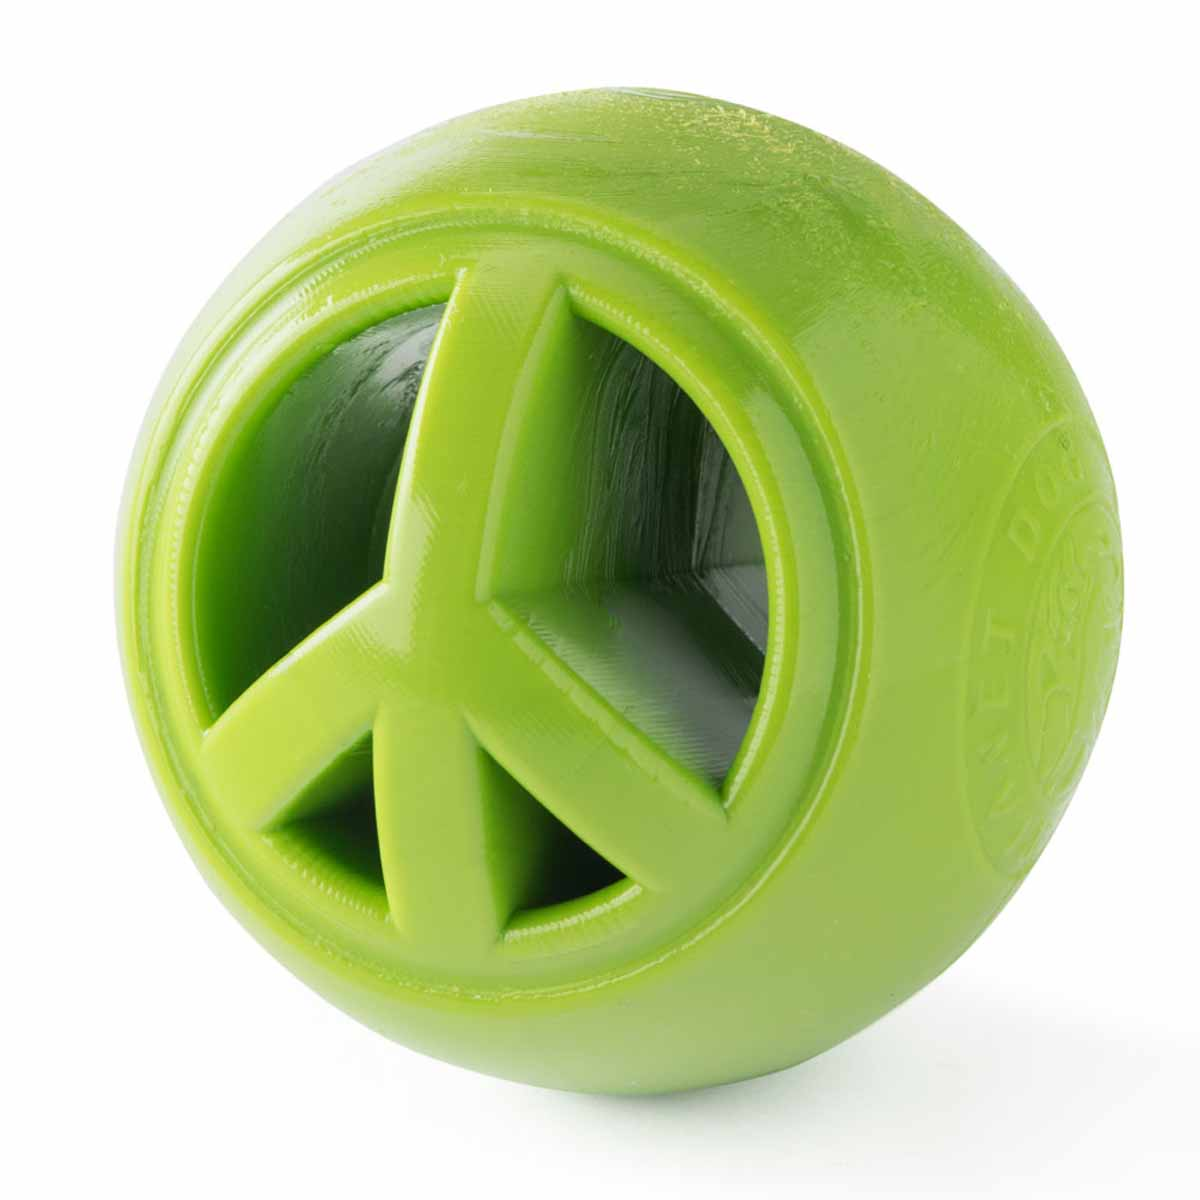 Planet Dog Orbee-Tuff Nooks Ball Dog Toy by Planet Dog - Peace